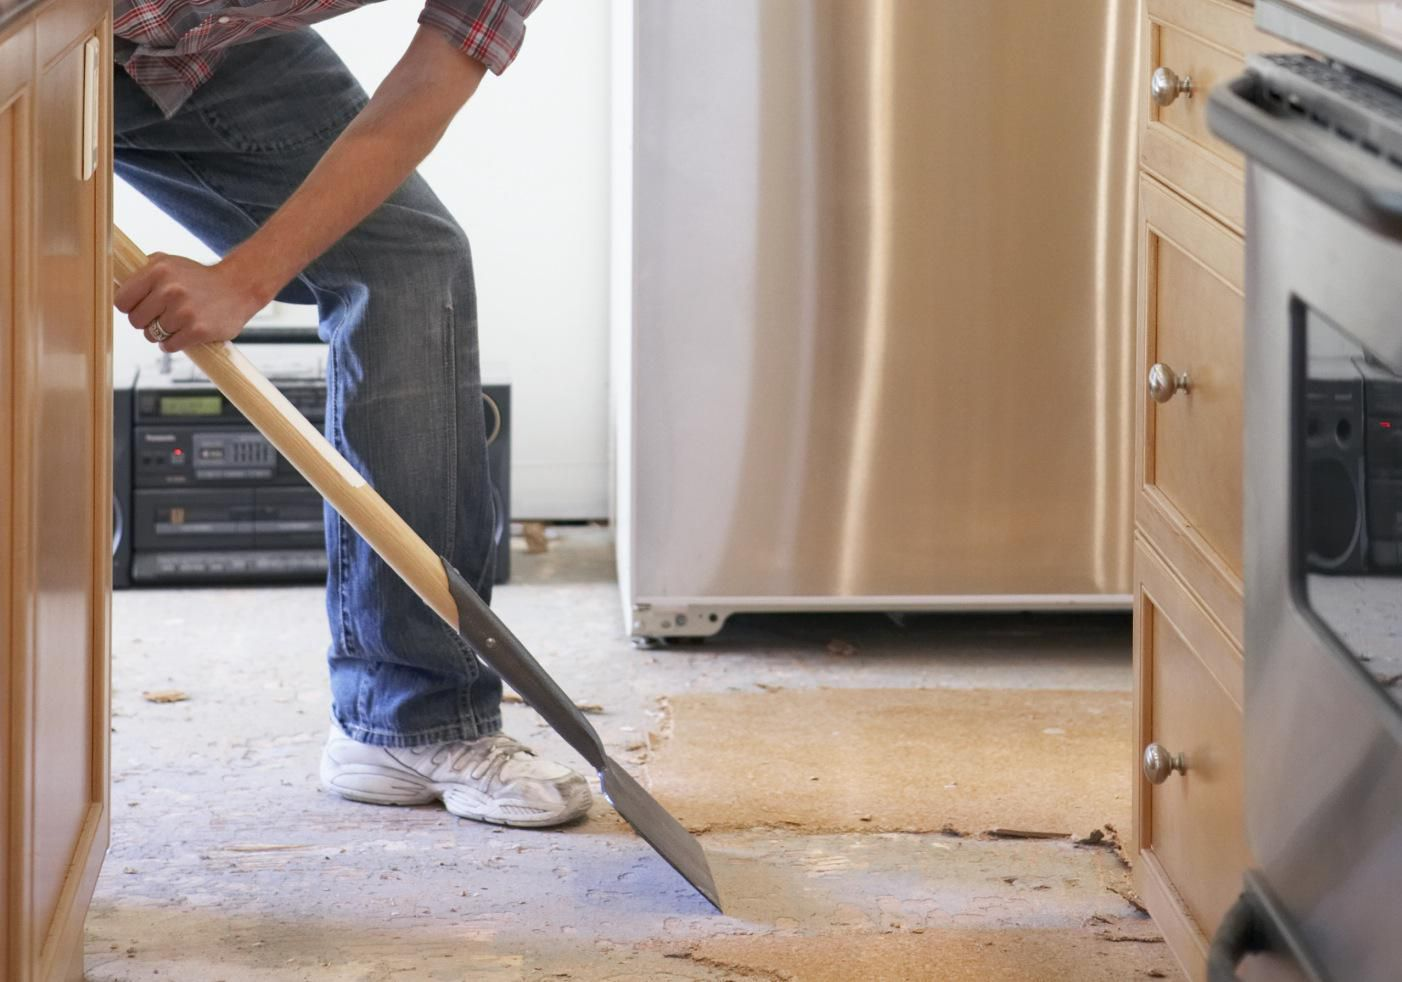 Which Comes First Flooring Or Cabinets Kitchen Cabinets And Flooring Installing Kitchen Cabinets Wood Floors Wide Plank